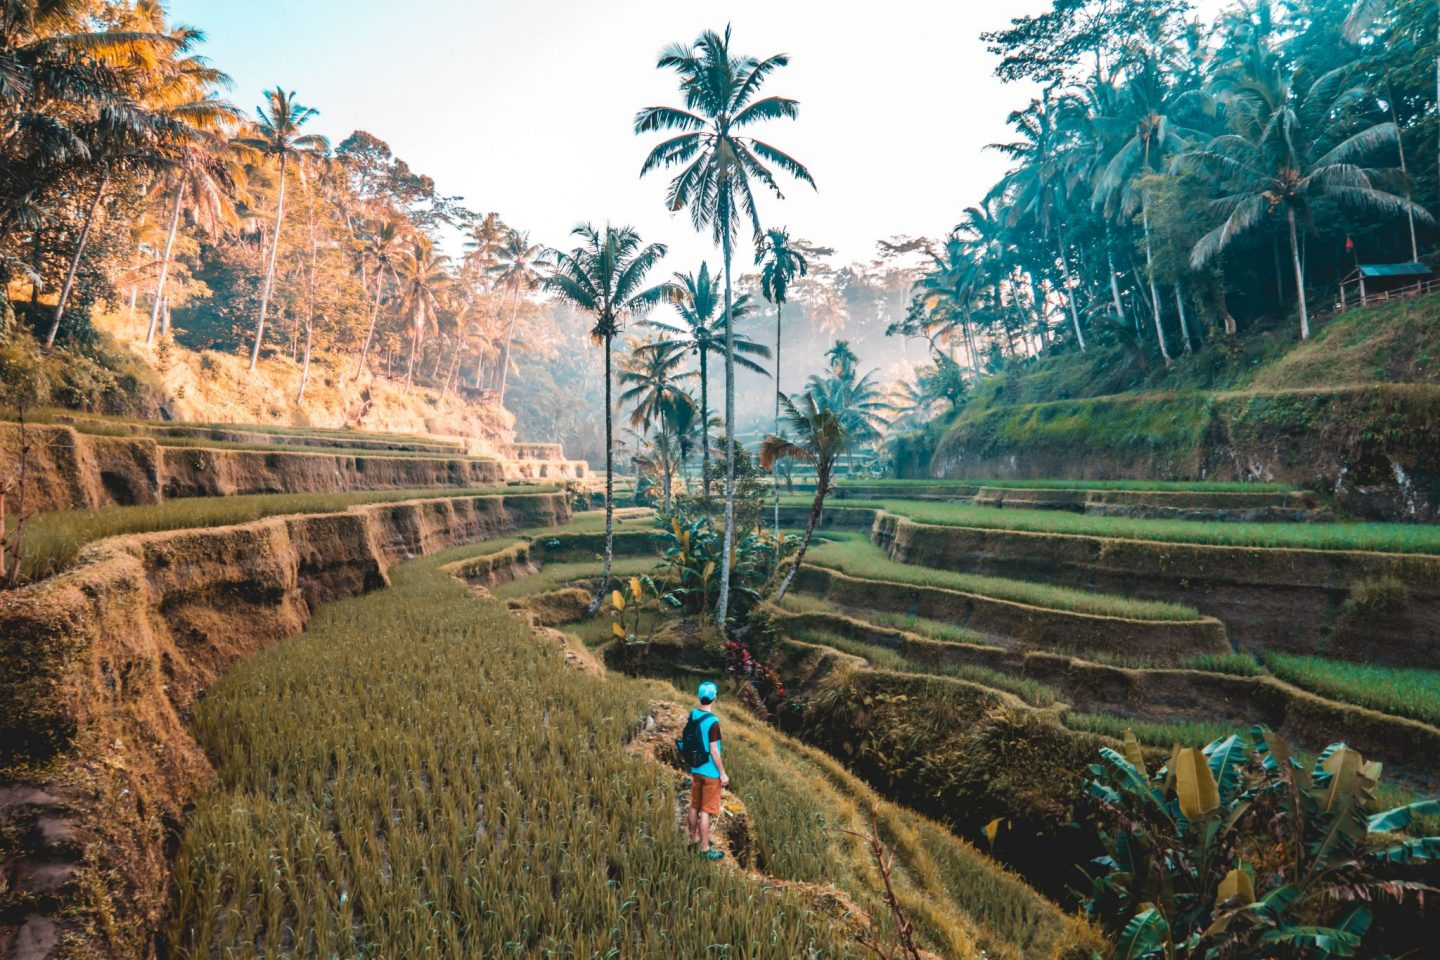 local community, bali, travel, traveling, wanderlust, tips on traveling, responsible travel, sustainable